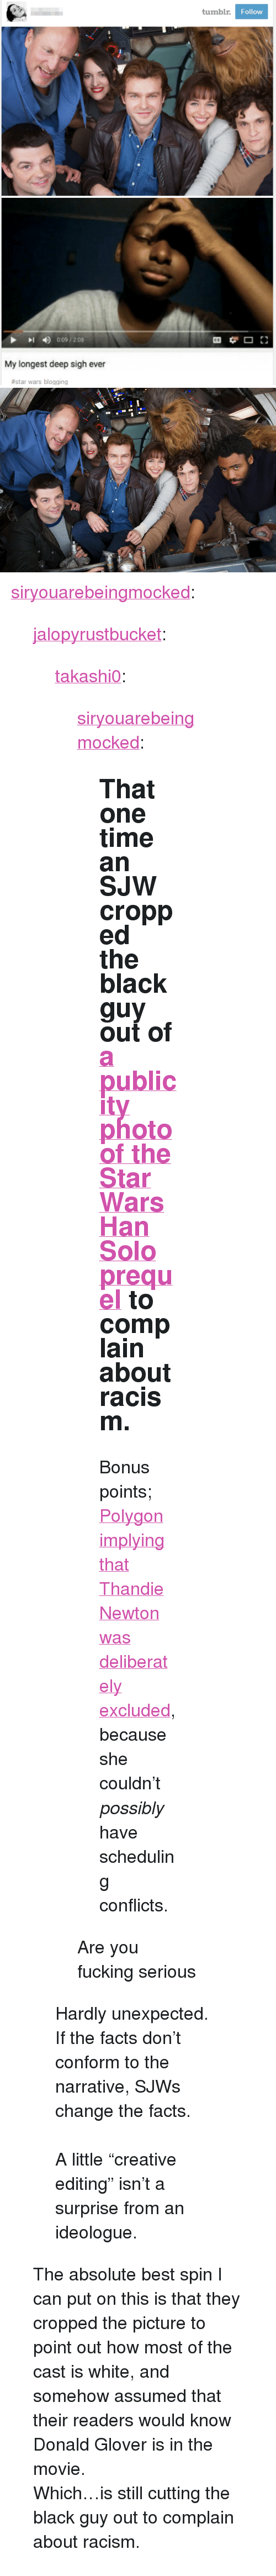 """Disney, Donald Glover, and Facts: tumbl  Follow  I 0.09/208  My longest deep sigh ever  #star wars blogging <p><a href=""""http://siryouarebeingmocked.tumblr.com/post/157702937970/takashi0-siryouarebeingmocked-that-one-time-an"""" class=""""tumblr_blog"""">siryouarebeingmocked</a>:</p>  <blockquote><p><a href=""""http://jalopyrustbucket.tumblr.com/post/157699858897/siryouarebeingmocked-that-one-time-an-sjw"""" class=""""tumblr_blog"""">jalopyrustbucket</a>:</p><blockquote> <p><a href=""""https://takashi0.tumblr.com/post/157697174717/siryouarebeingmocked-that-one-time-an-sjw"""" class=""""tumblr_blog"""">takashi0</a>:</p> <blockquote> <p><a href=""""http://siryouarebeingmocked.tumblr.com/post/157697038979/that-one-time-an-sjw-cropped-the-black-guy-out-of"""" class=""""tumblr_blog"""">siryouarebeingmocked</a>:</p> <blockquote> <h2>That one time an SJW cropped the black guy out of <a href=""""http://news.nationalpost.com/arts/movies/lucasfilm-and-disney-release-first-cast-photo-from-the-han-solo-movie-spinoff"""">a publicity photo of the Star Wars Han Solo prequel</a> to complain about racism.</h2> <p>Bonus points; <a href=""""https://archive.is/bzJDb"""">Polygon implying that Thandie Newton was deliberately excluded</a>, because she couldn't <i>possibly</i> have scheduling conflicts. <br/></p> </blockquote> <p>Are you fucking serious</p> </blockquote> <p>Hardly unexpected. If the facts don't conform to the narrative, SJWs change the facts.<br/><br/>A little """"creative editing"""" isn't a surprise from an ideologue.<br/></p> </blockquote> <p>The absolute best spin I can put on this is that they cropped the picture to point out how most of the cast is white, and somehow assumed that their readers would know Donald Glover is in the movie.</p><p>Which…is still cutting the black guy out to complain about racism.</p></blockquote>"""